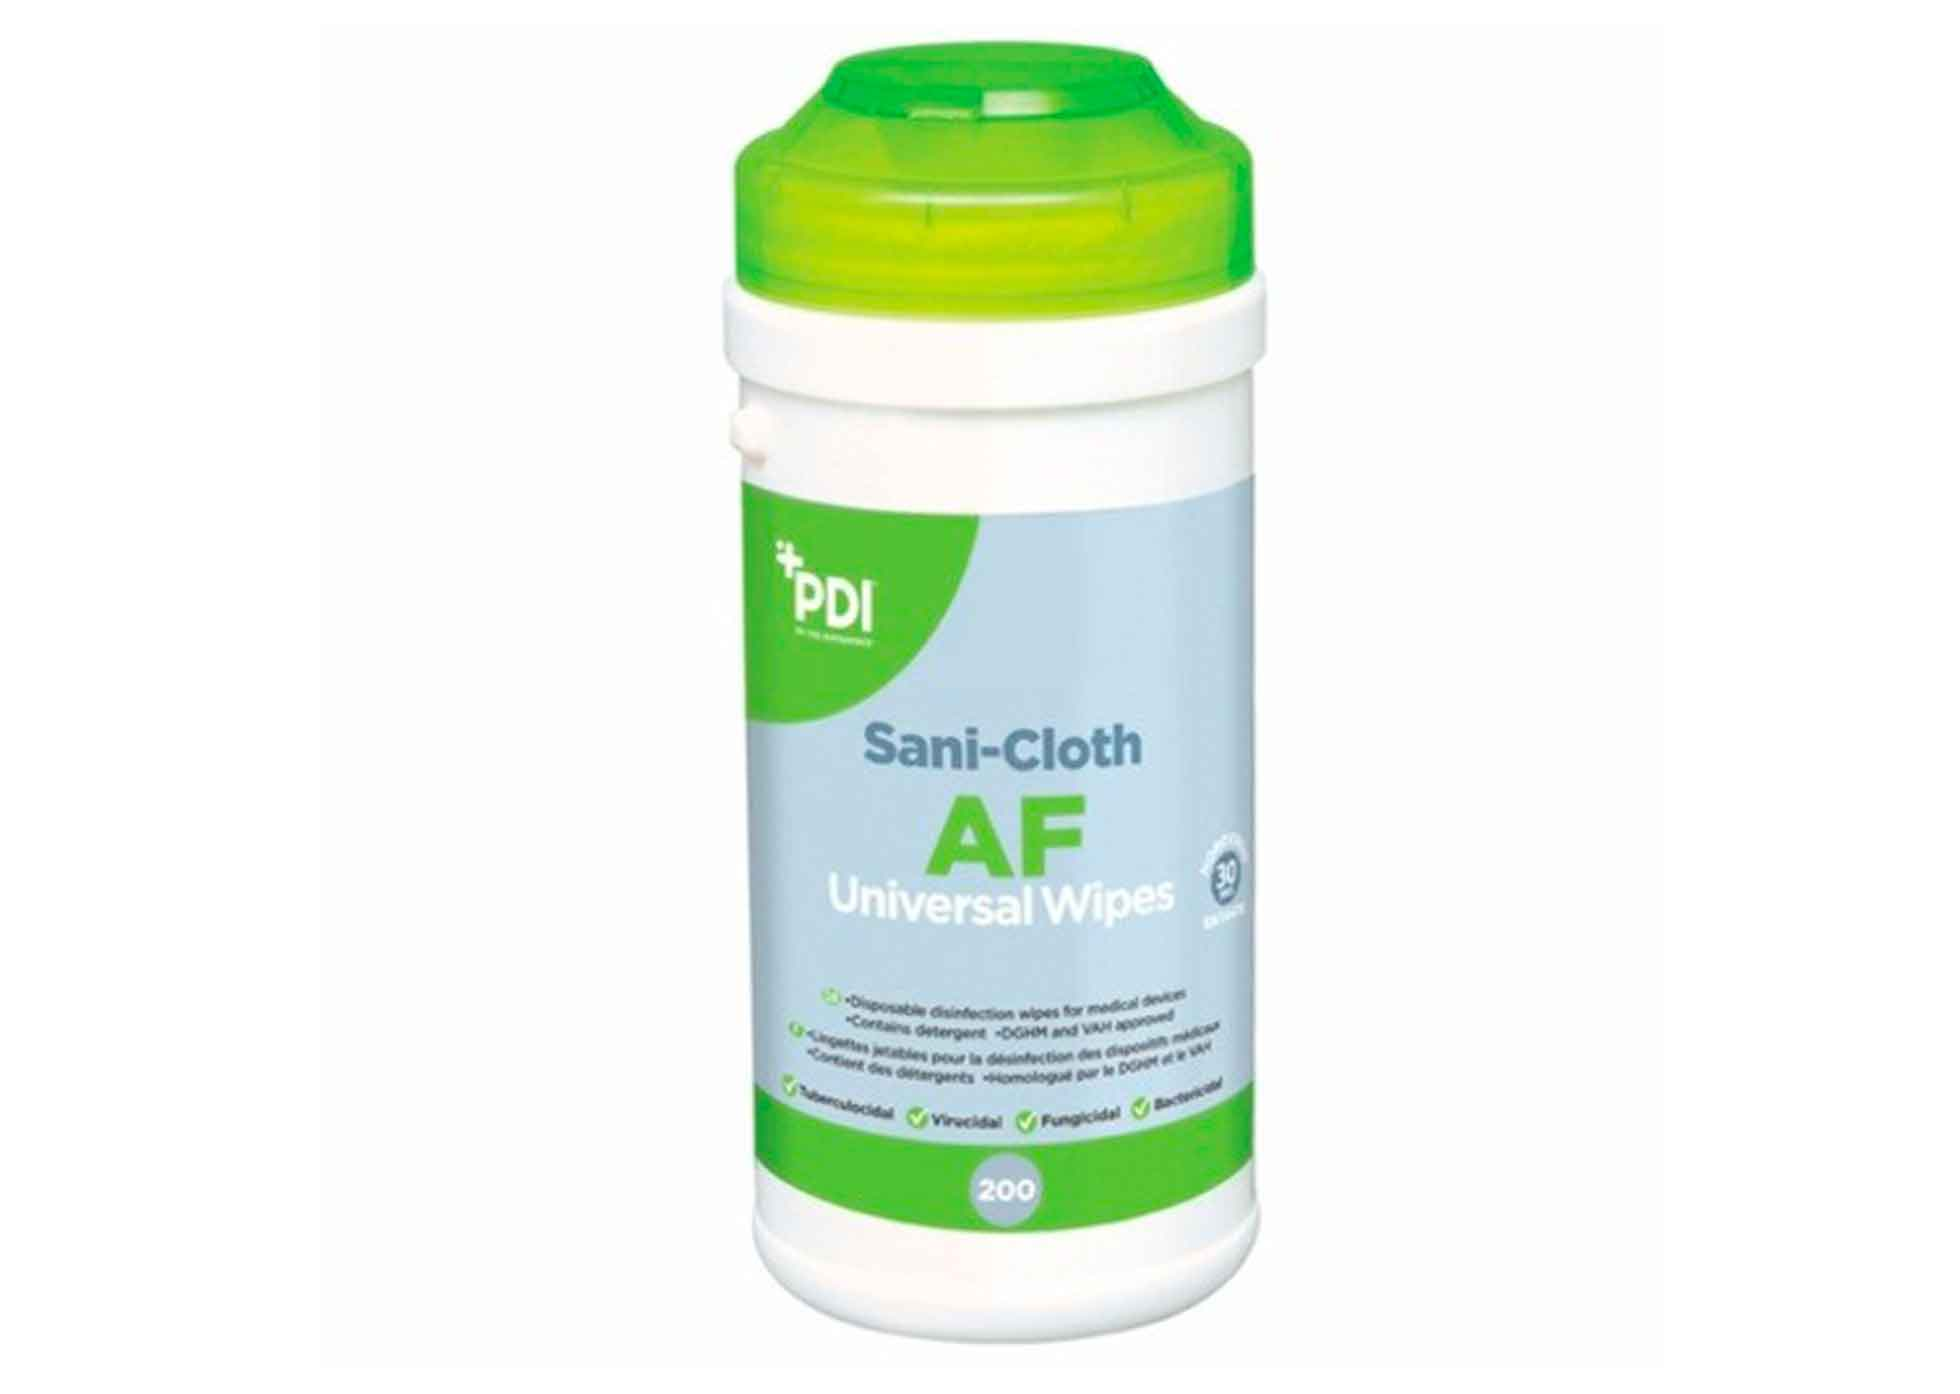 PDI Sani Cloth Universal Wipes Tub of 200 - Similar to Clinell - PPE